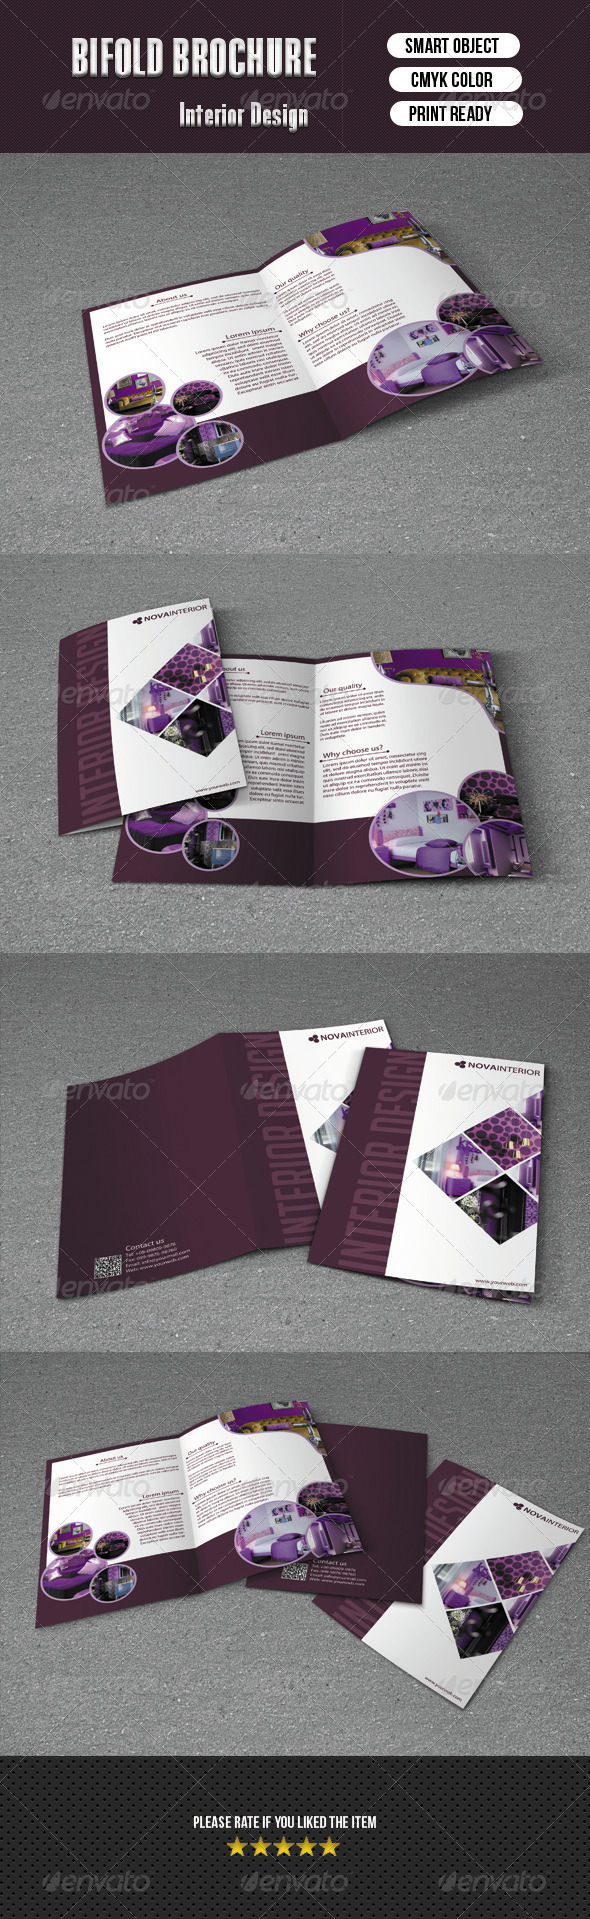 Bifold Brochure For Interior Design - Corporate Brochures